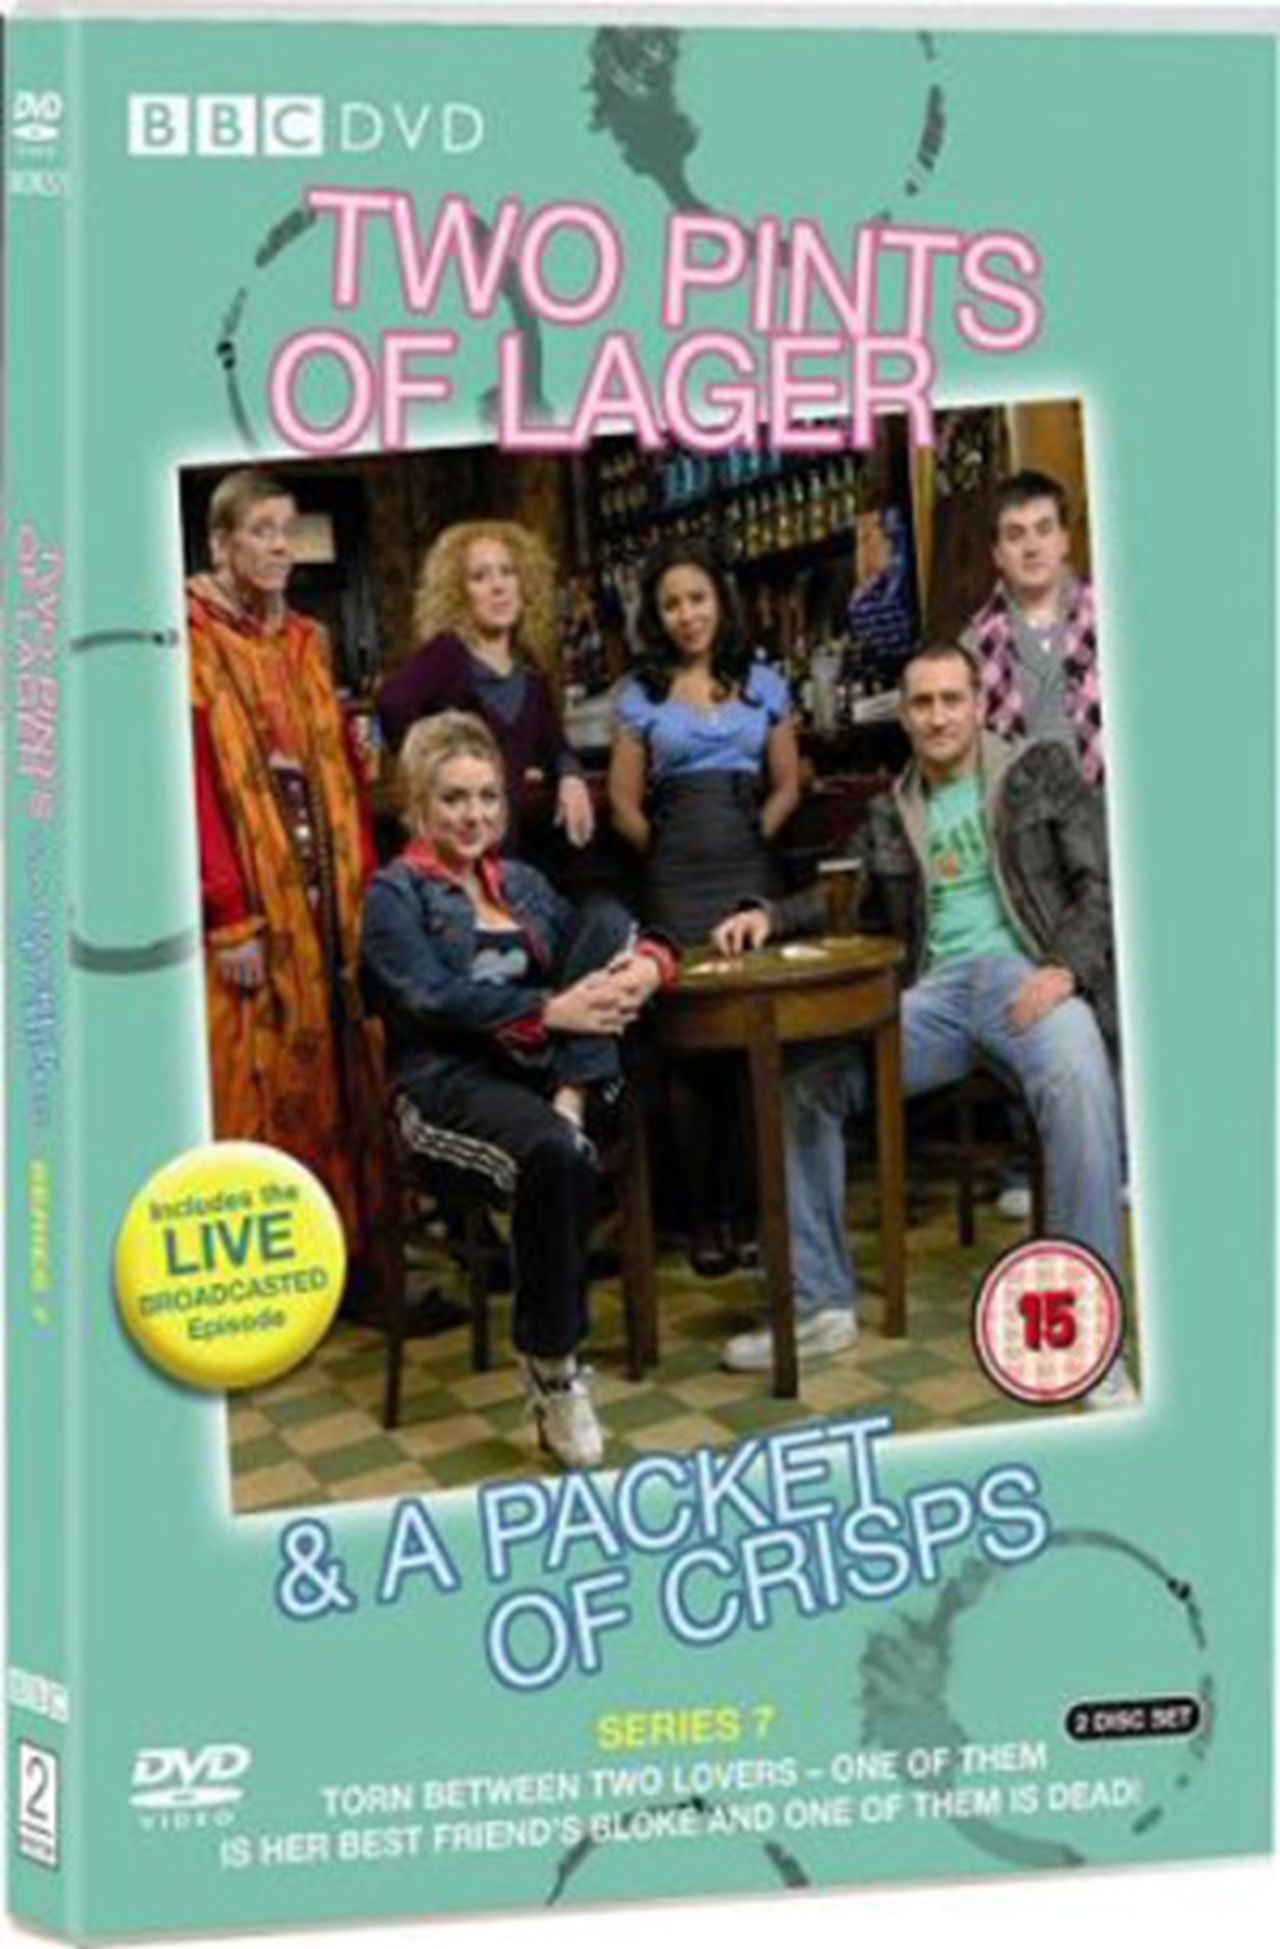 Two Pints of Lager and a Packet of Crisps: Series 7 - 1